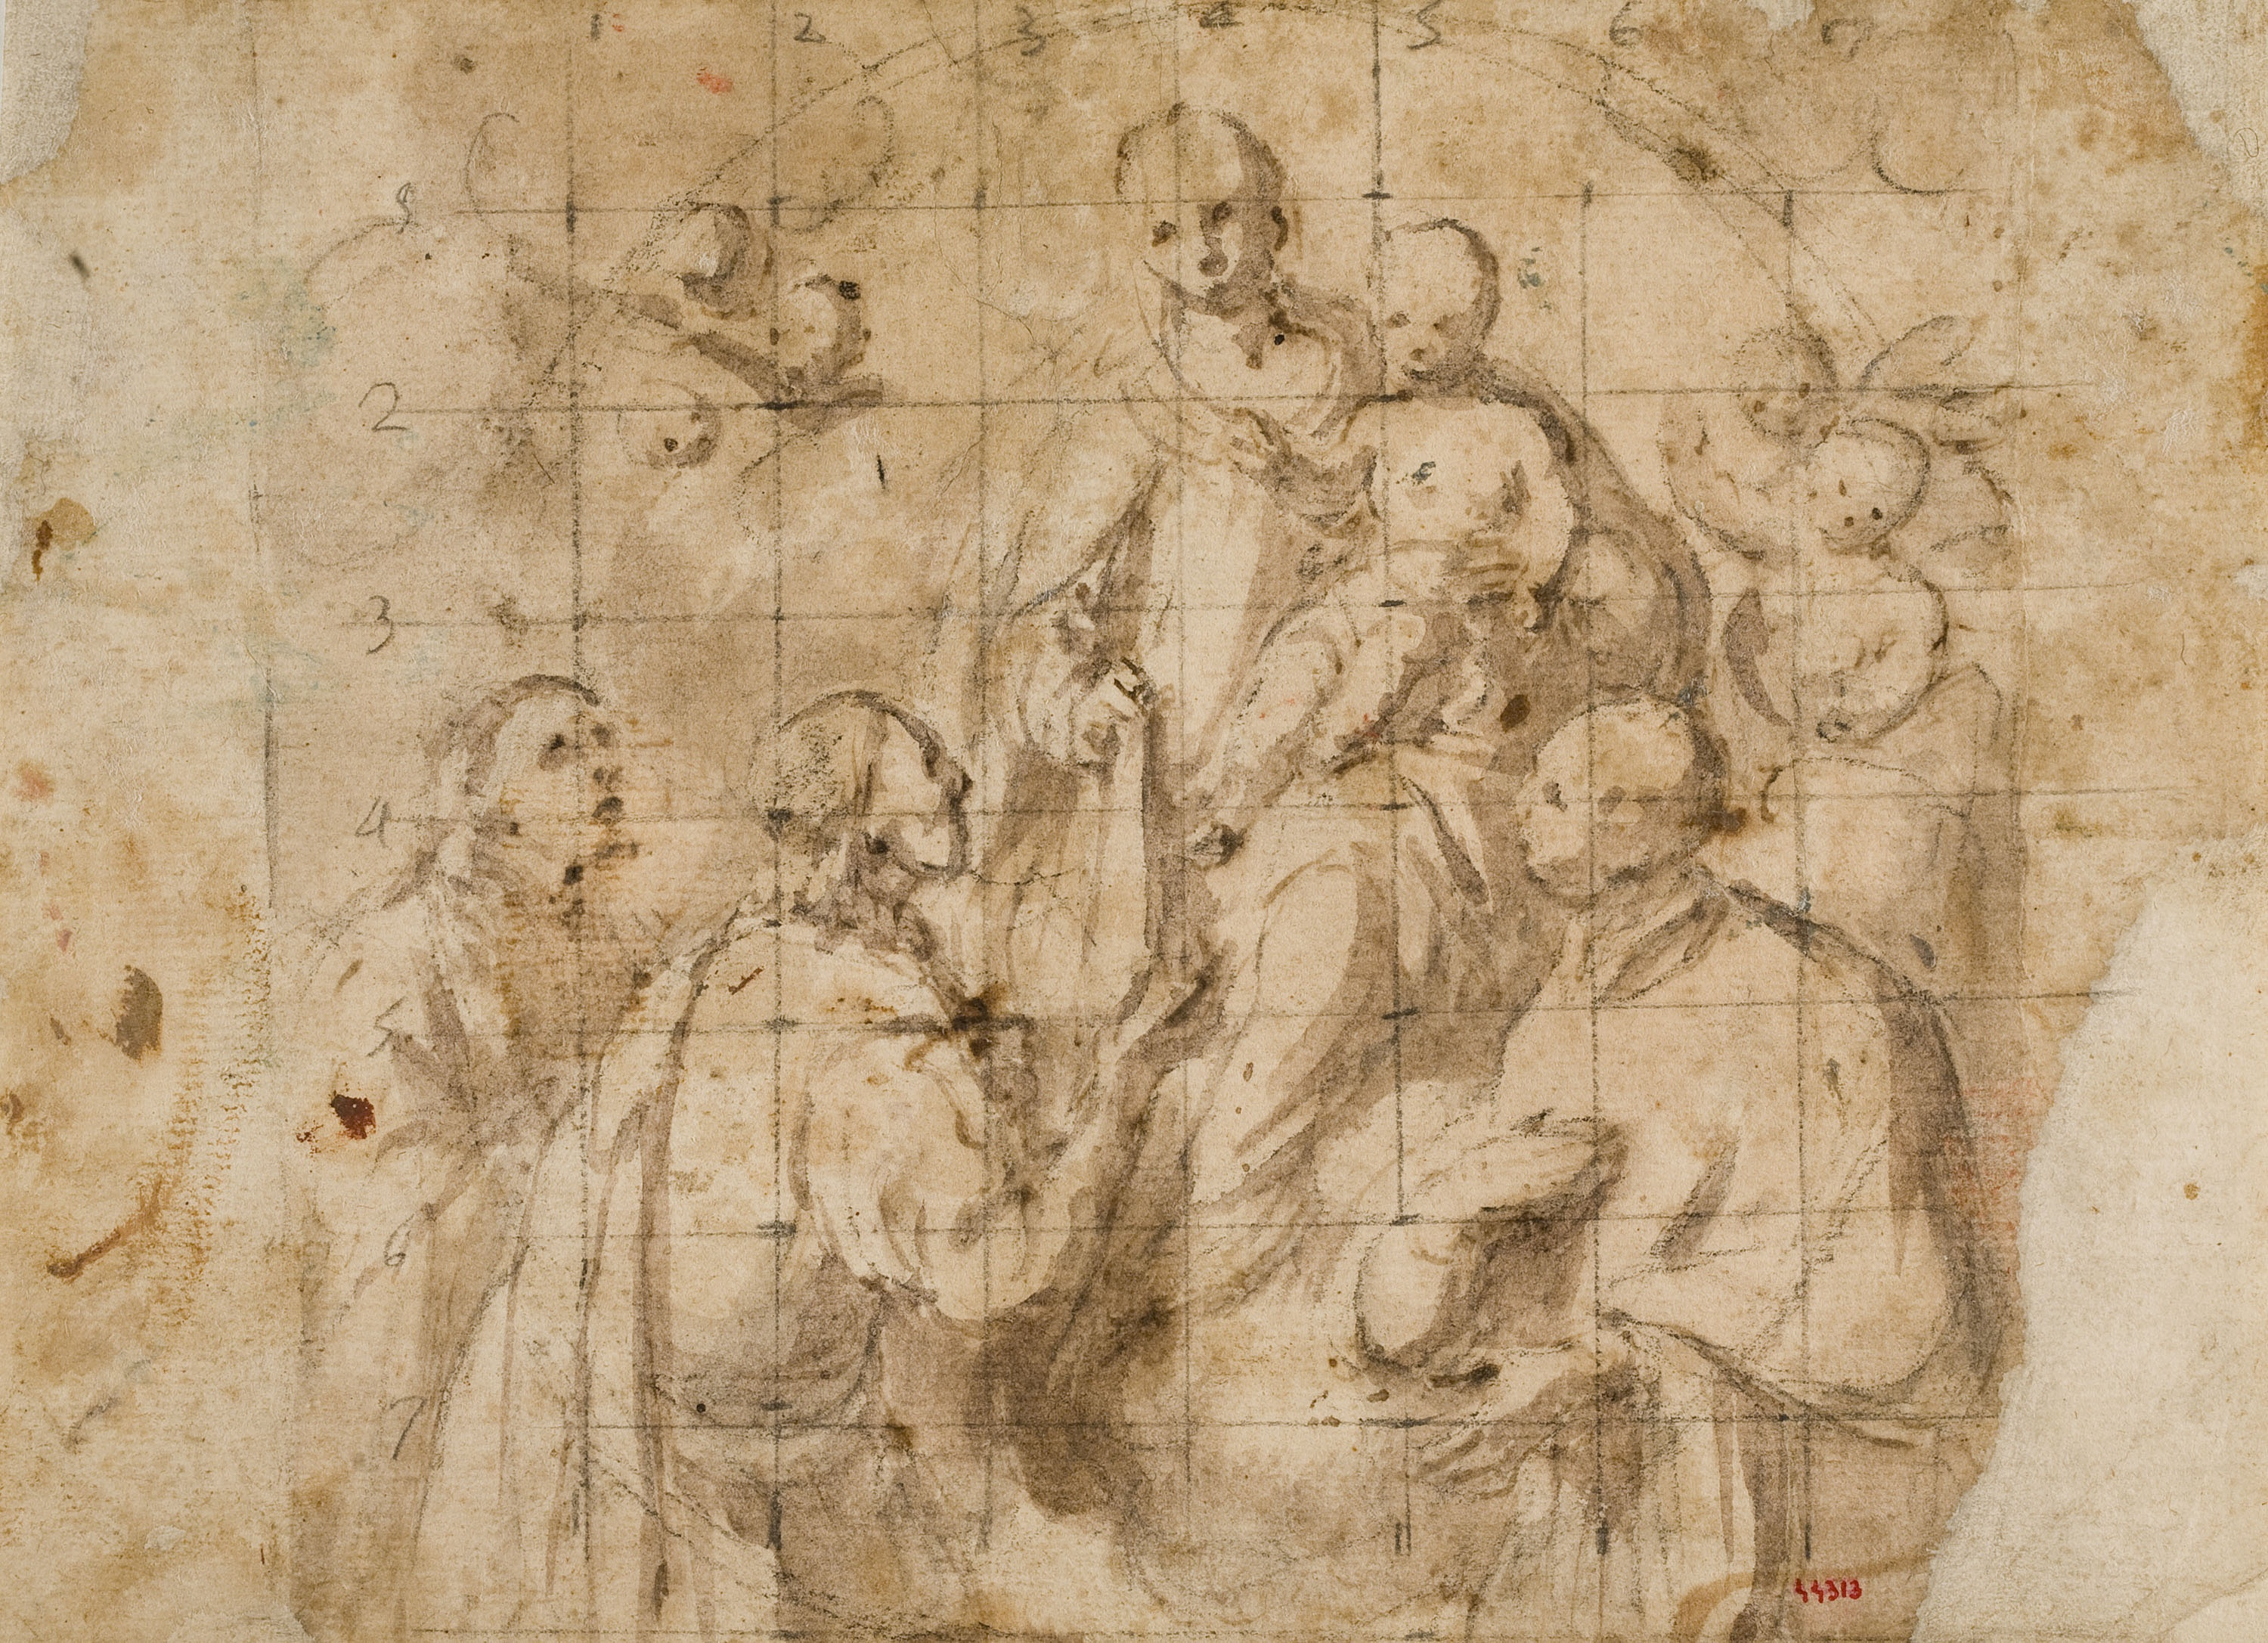 Antoni Viladomat - Study for the picture 'The Foundation of the Order of Mercy' - Circa 1730-1745